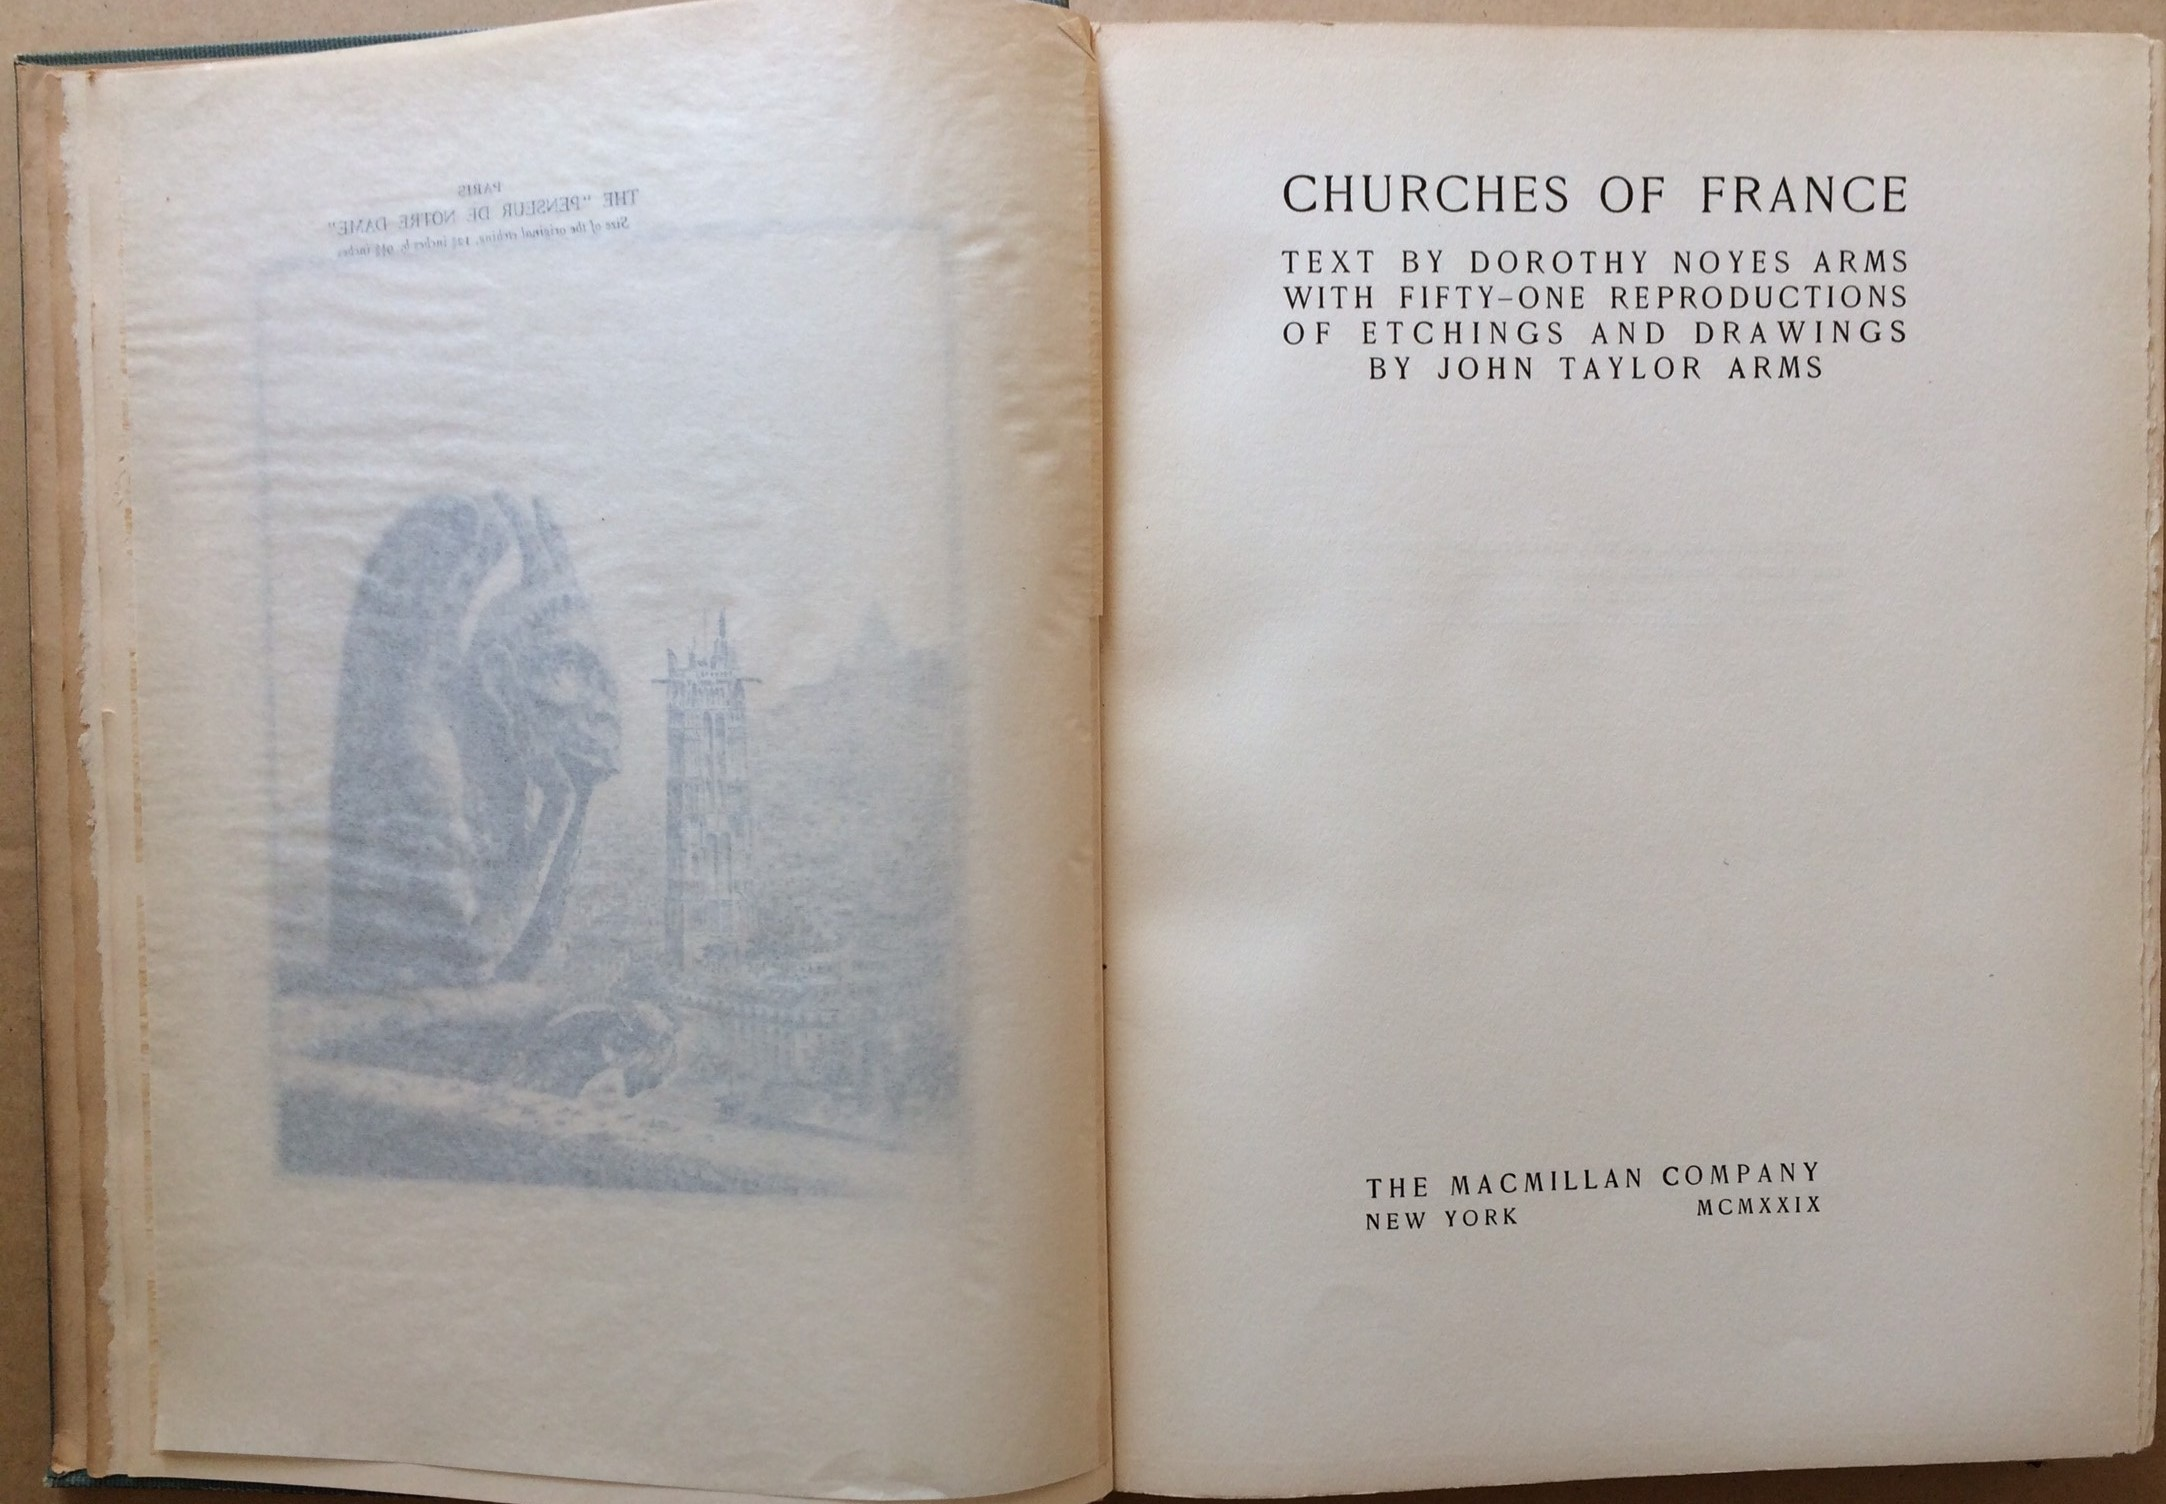 Image for Churches of France    (Fifty-One Reproductions of Etchings and Drawings)